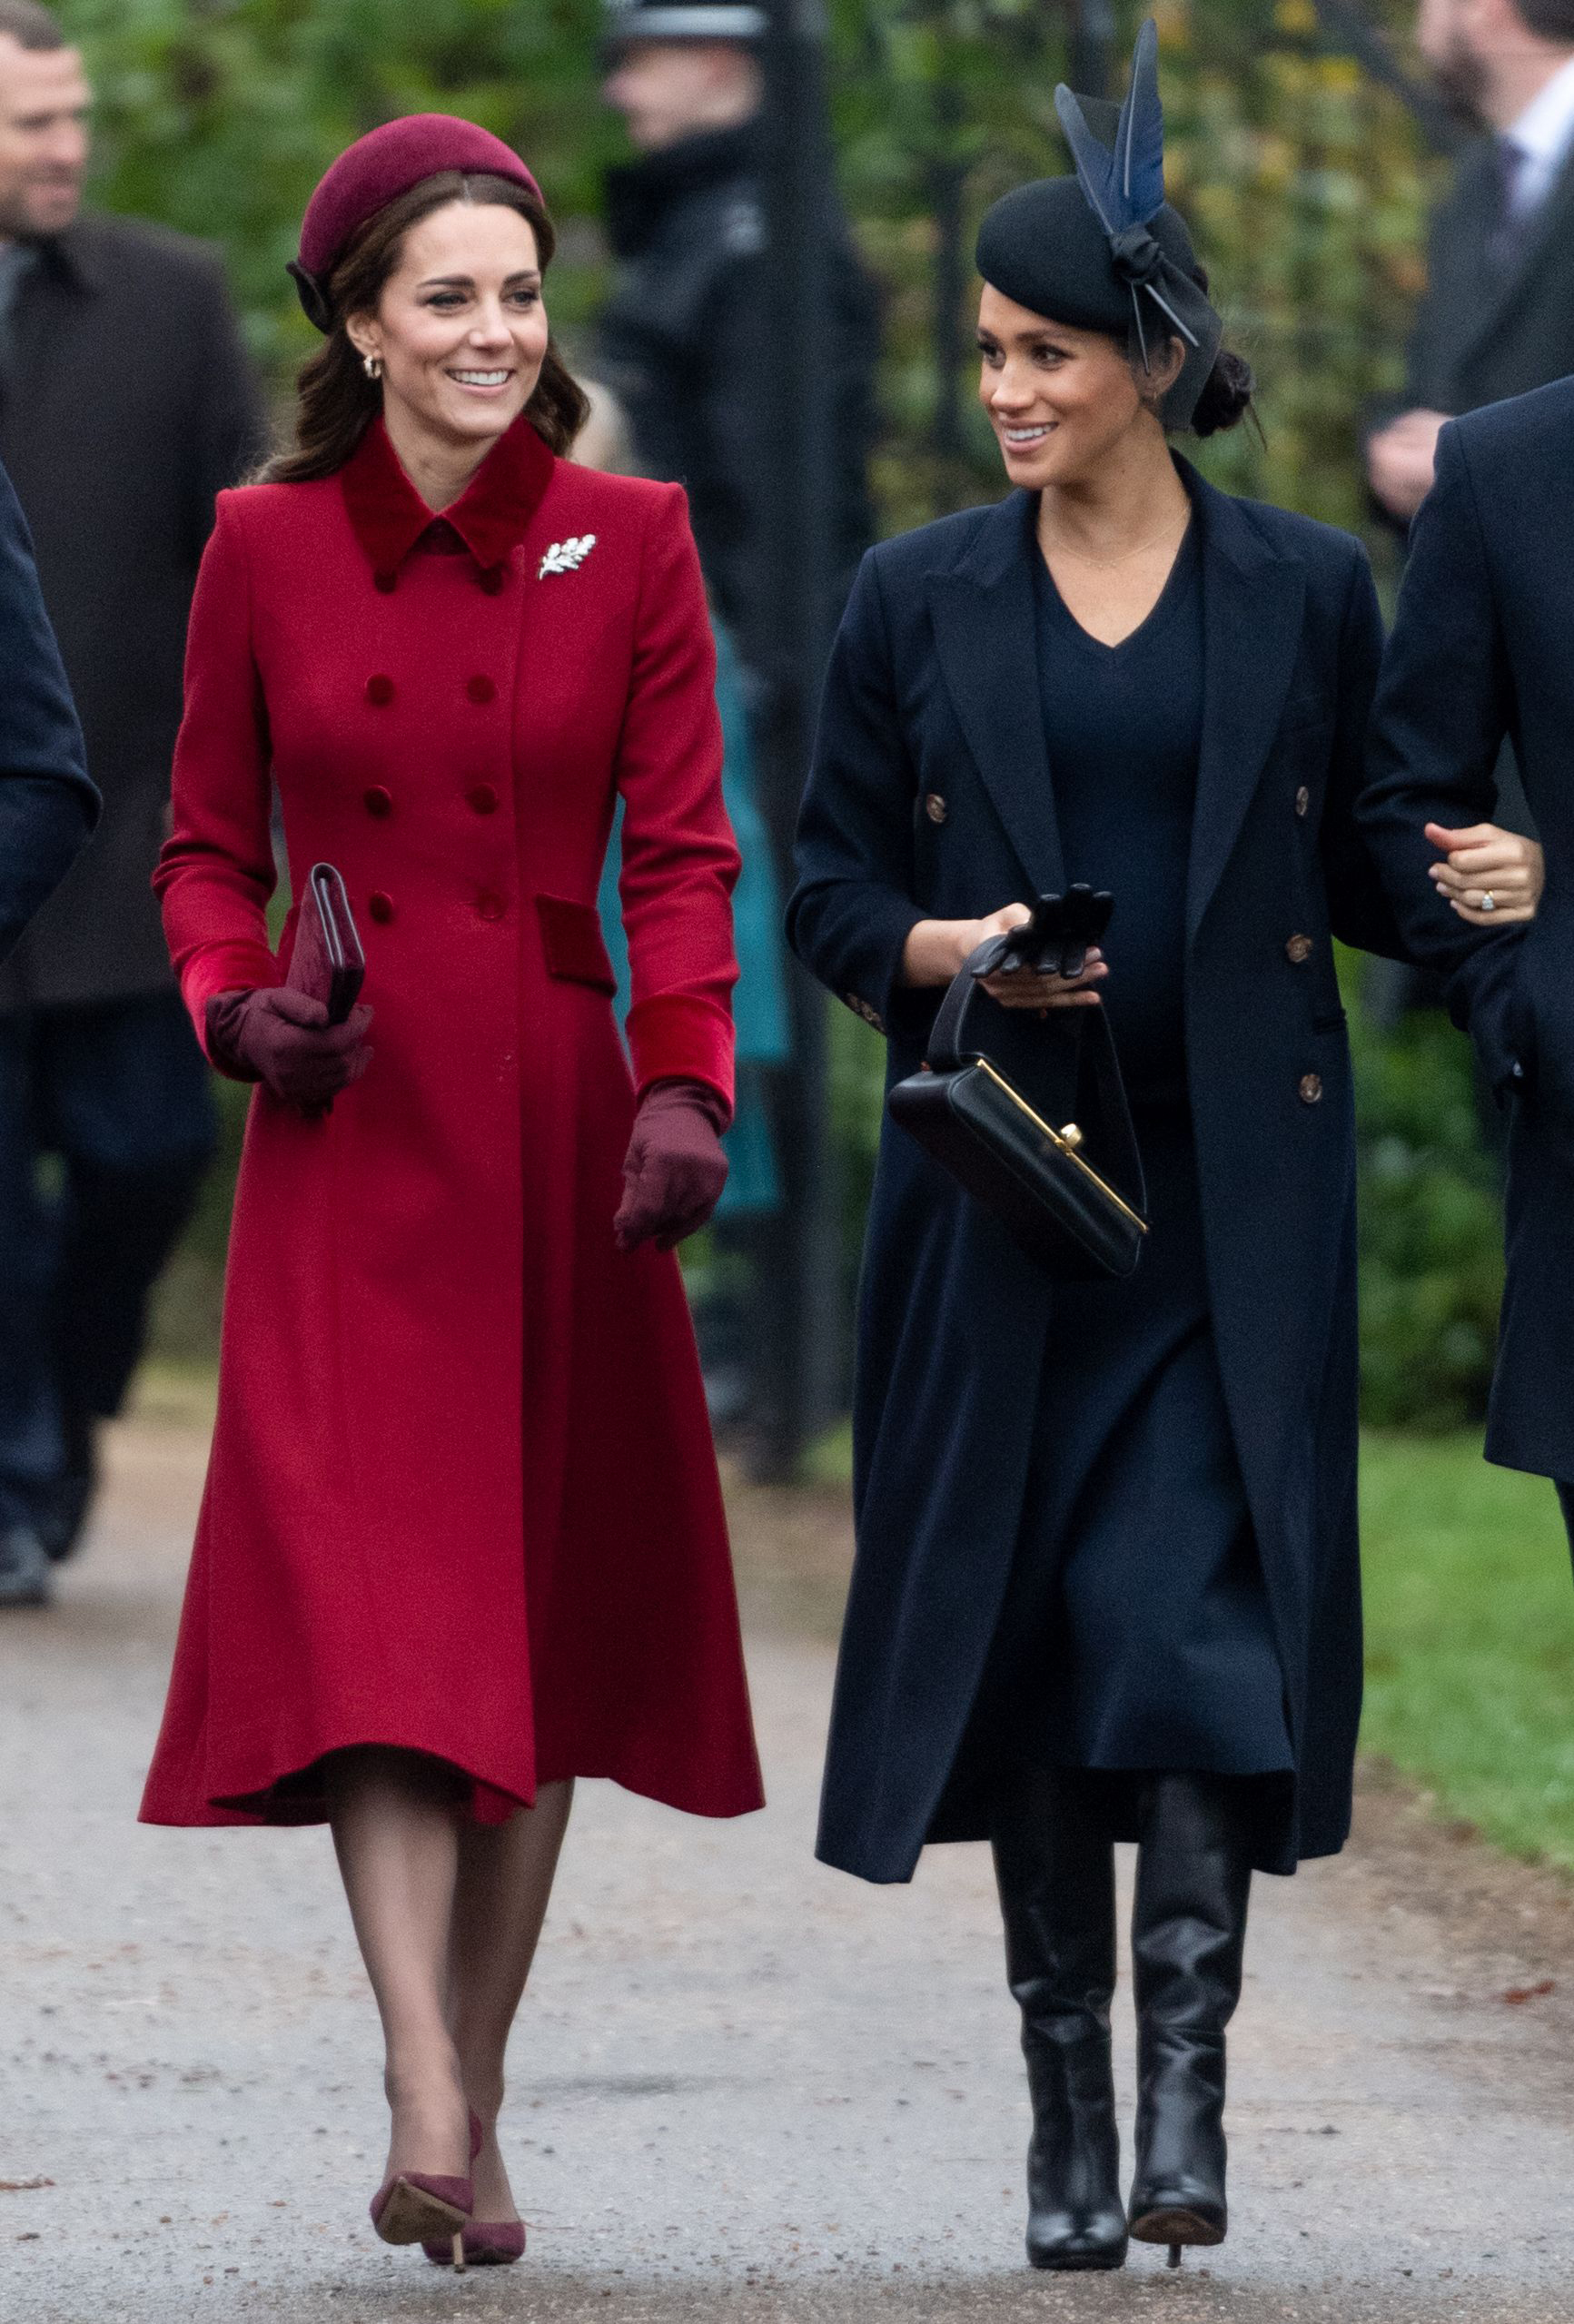 meghan markle and kate middleton will be civil for remembrance day in touch weekly